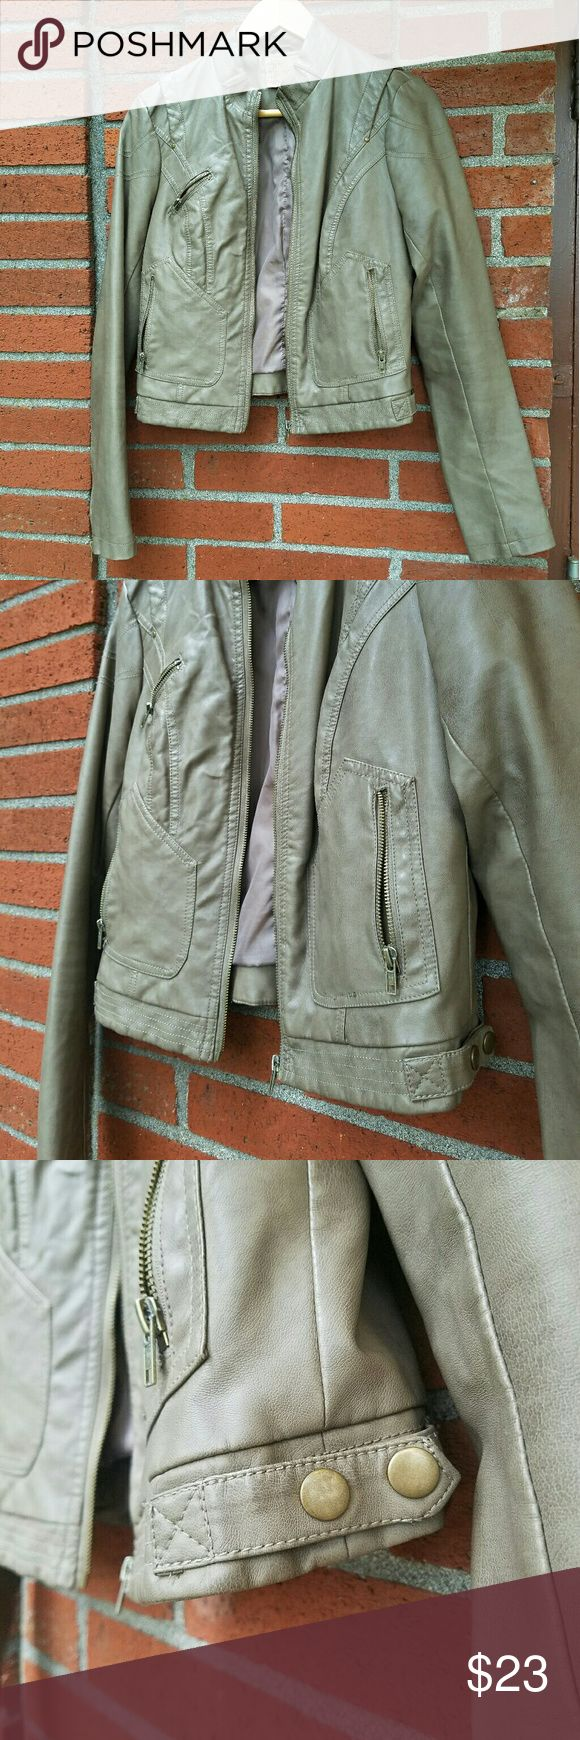 "Taupe Moto Jacket, Vegan Leather Vegan leather motorcycle jacket in taupe, from the brand ""Mine"". It is in excellent condition and I've worn it just a few times. No stains, tears, or damage of any kind. Lots of accents and interesting features. Perfect for layering in spring and summer evenings, and looks great with jeans in the fall. Jackets & Coats"